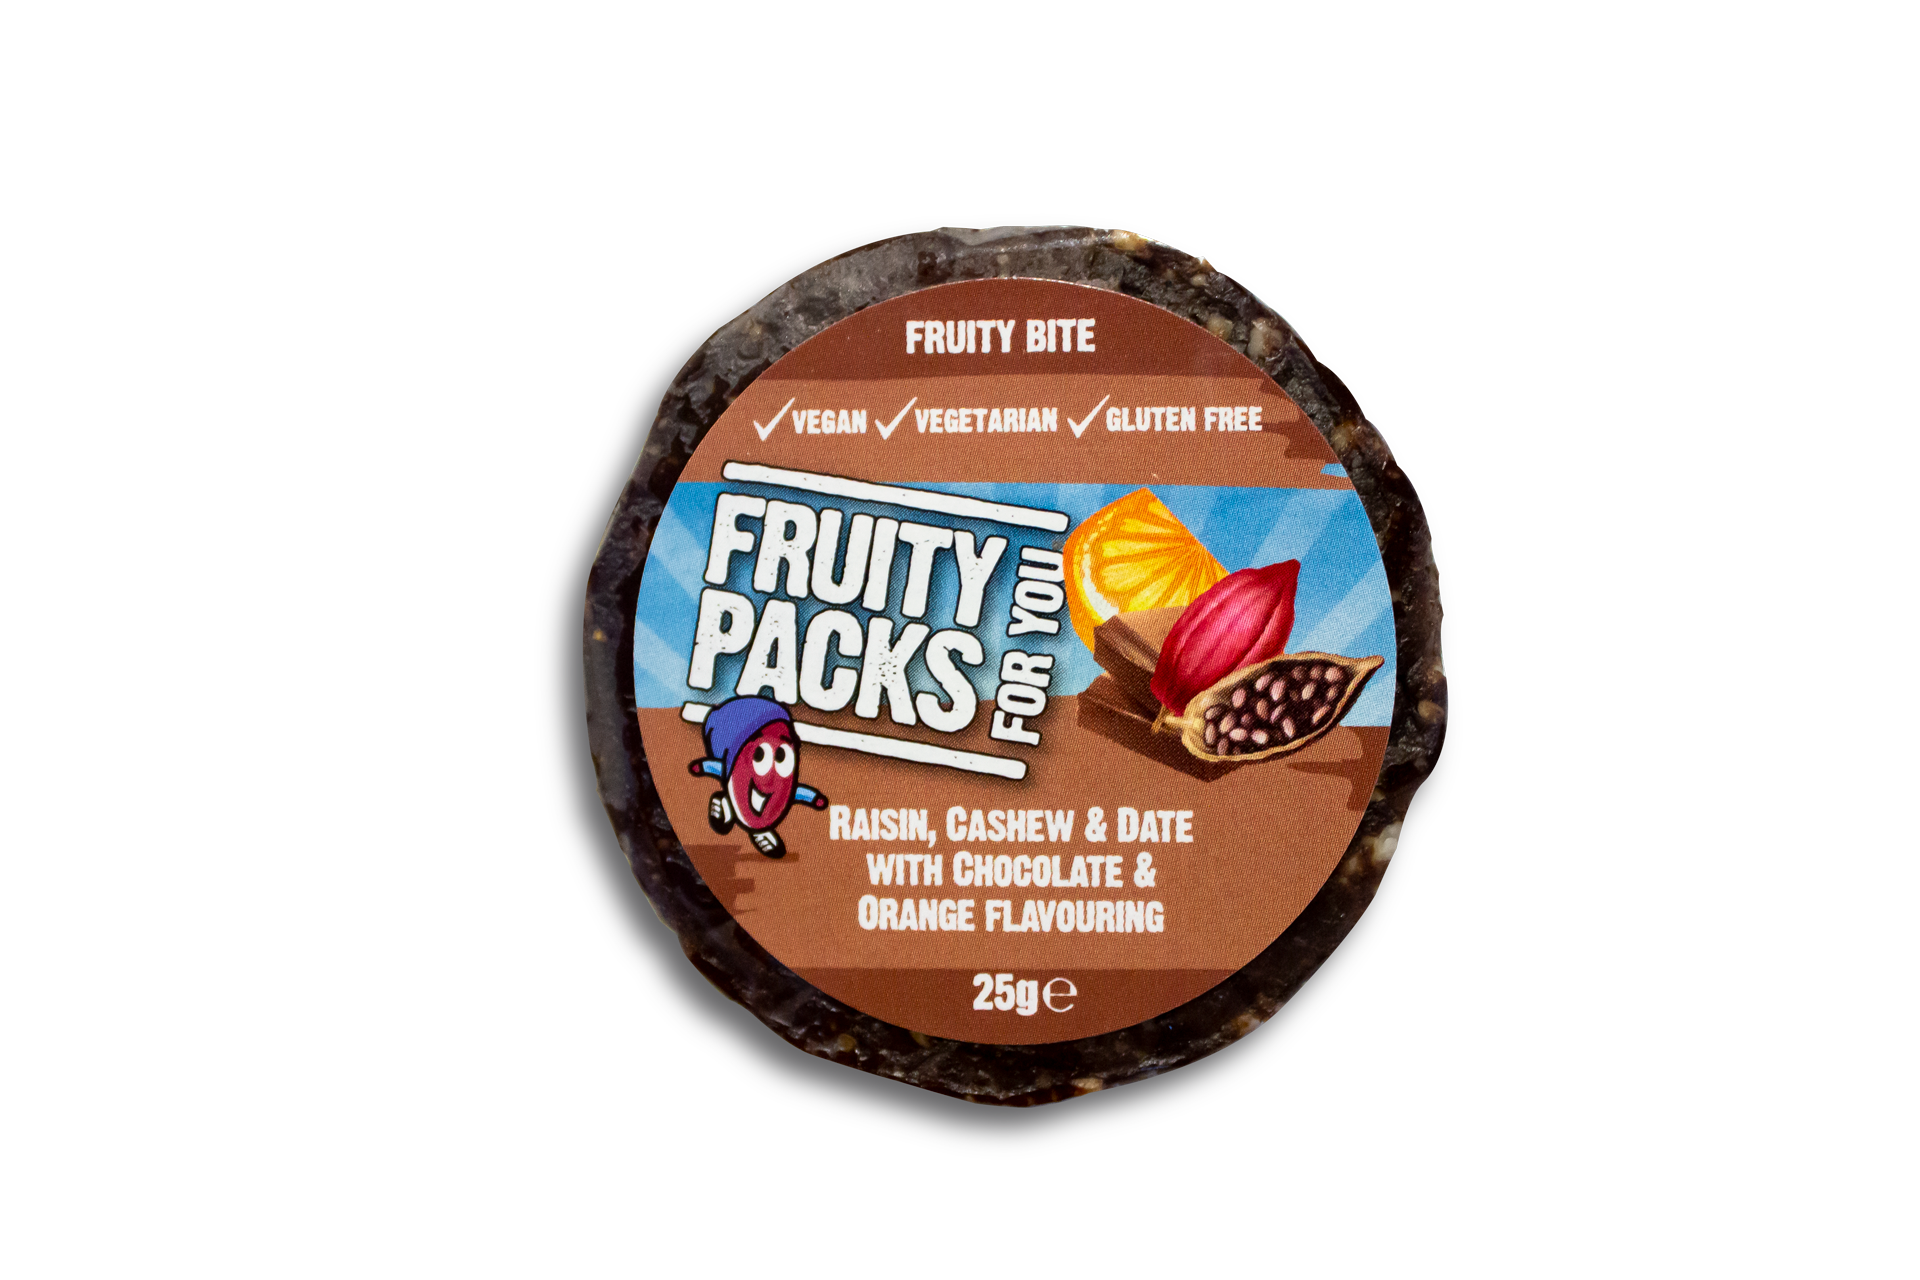 Fruity Packs chocolate & orange fruity bite